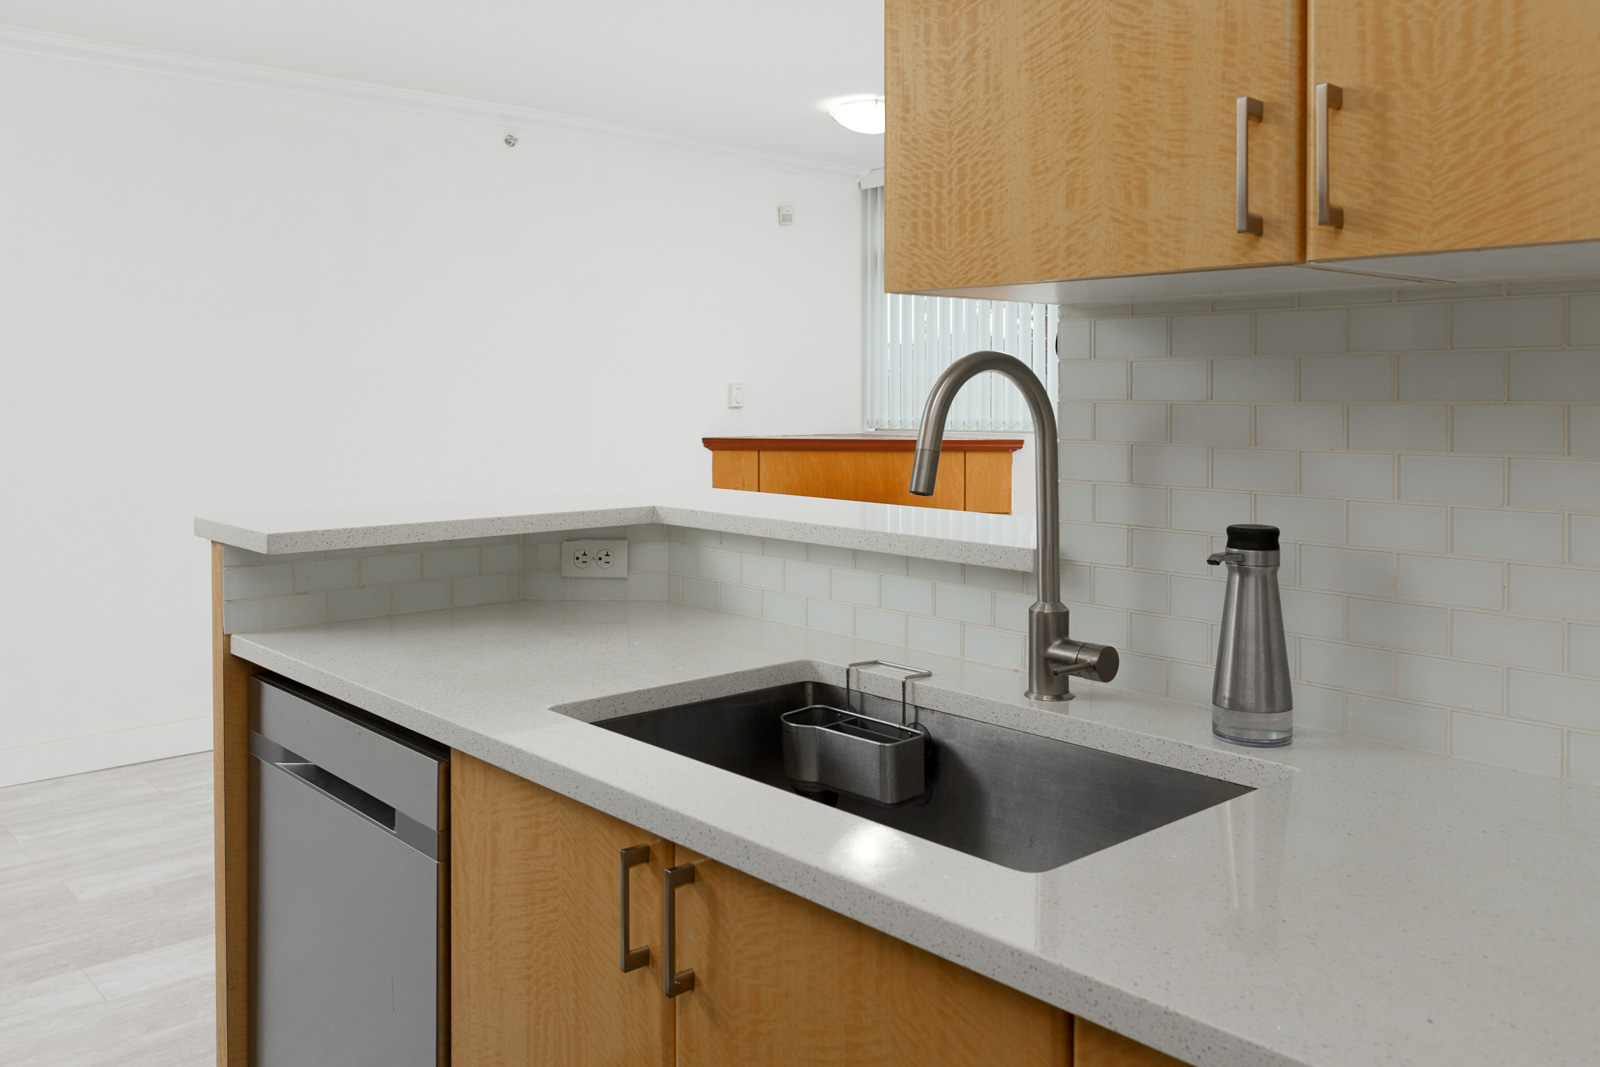 Kitchen sink in Vancouver unfurnished rental condo property